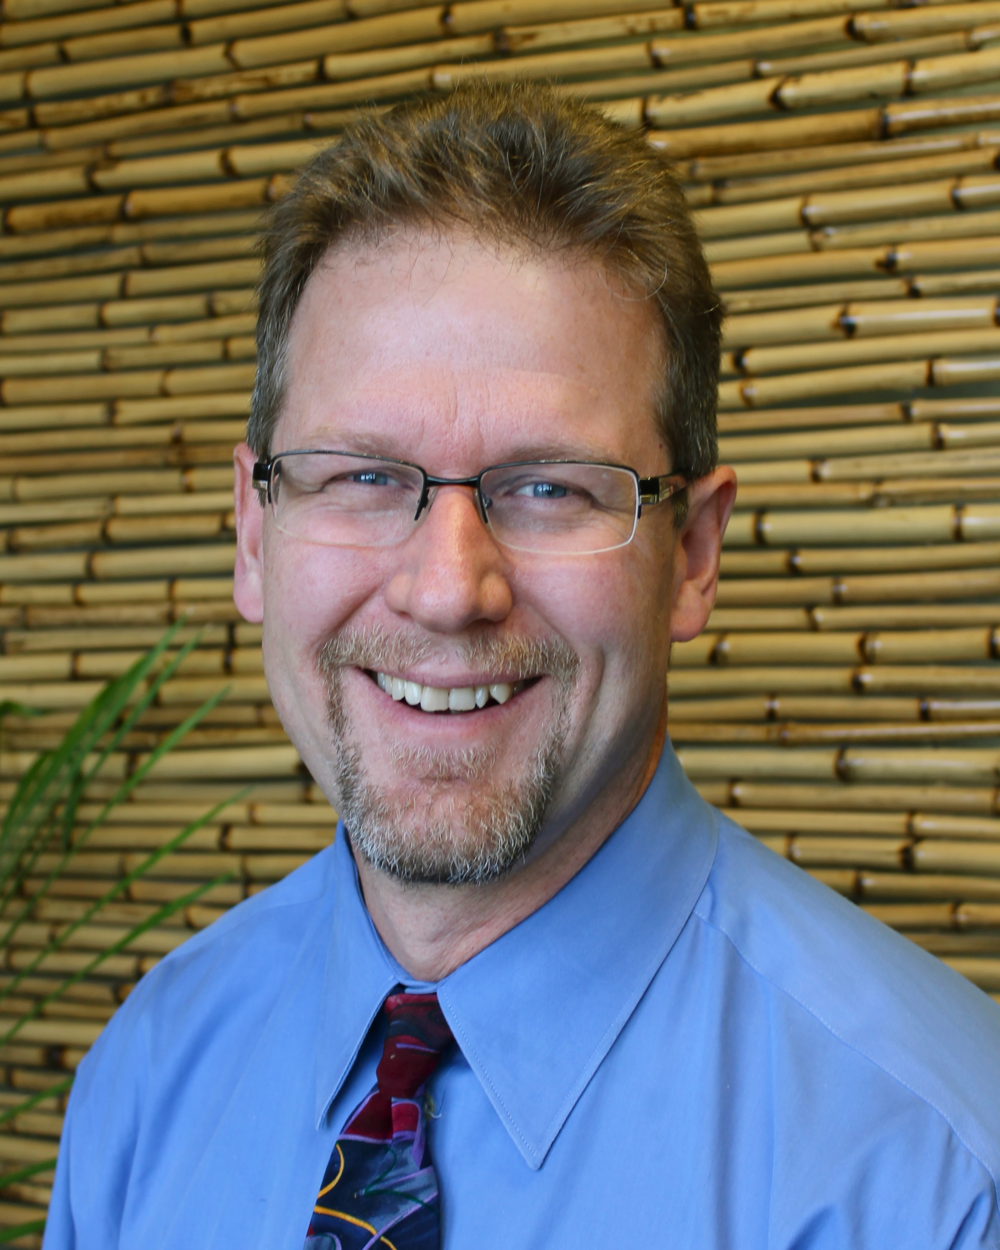 Dr. Scott Luper, N.D. - Medical Director